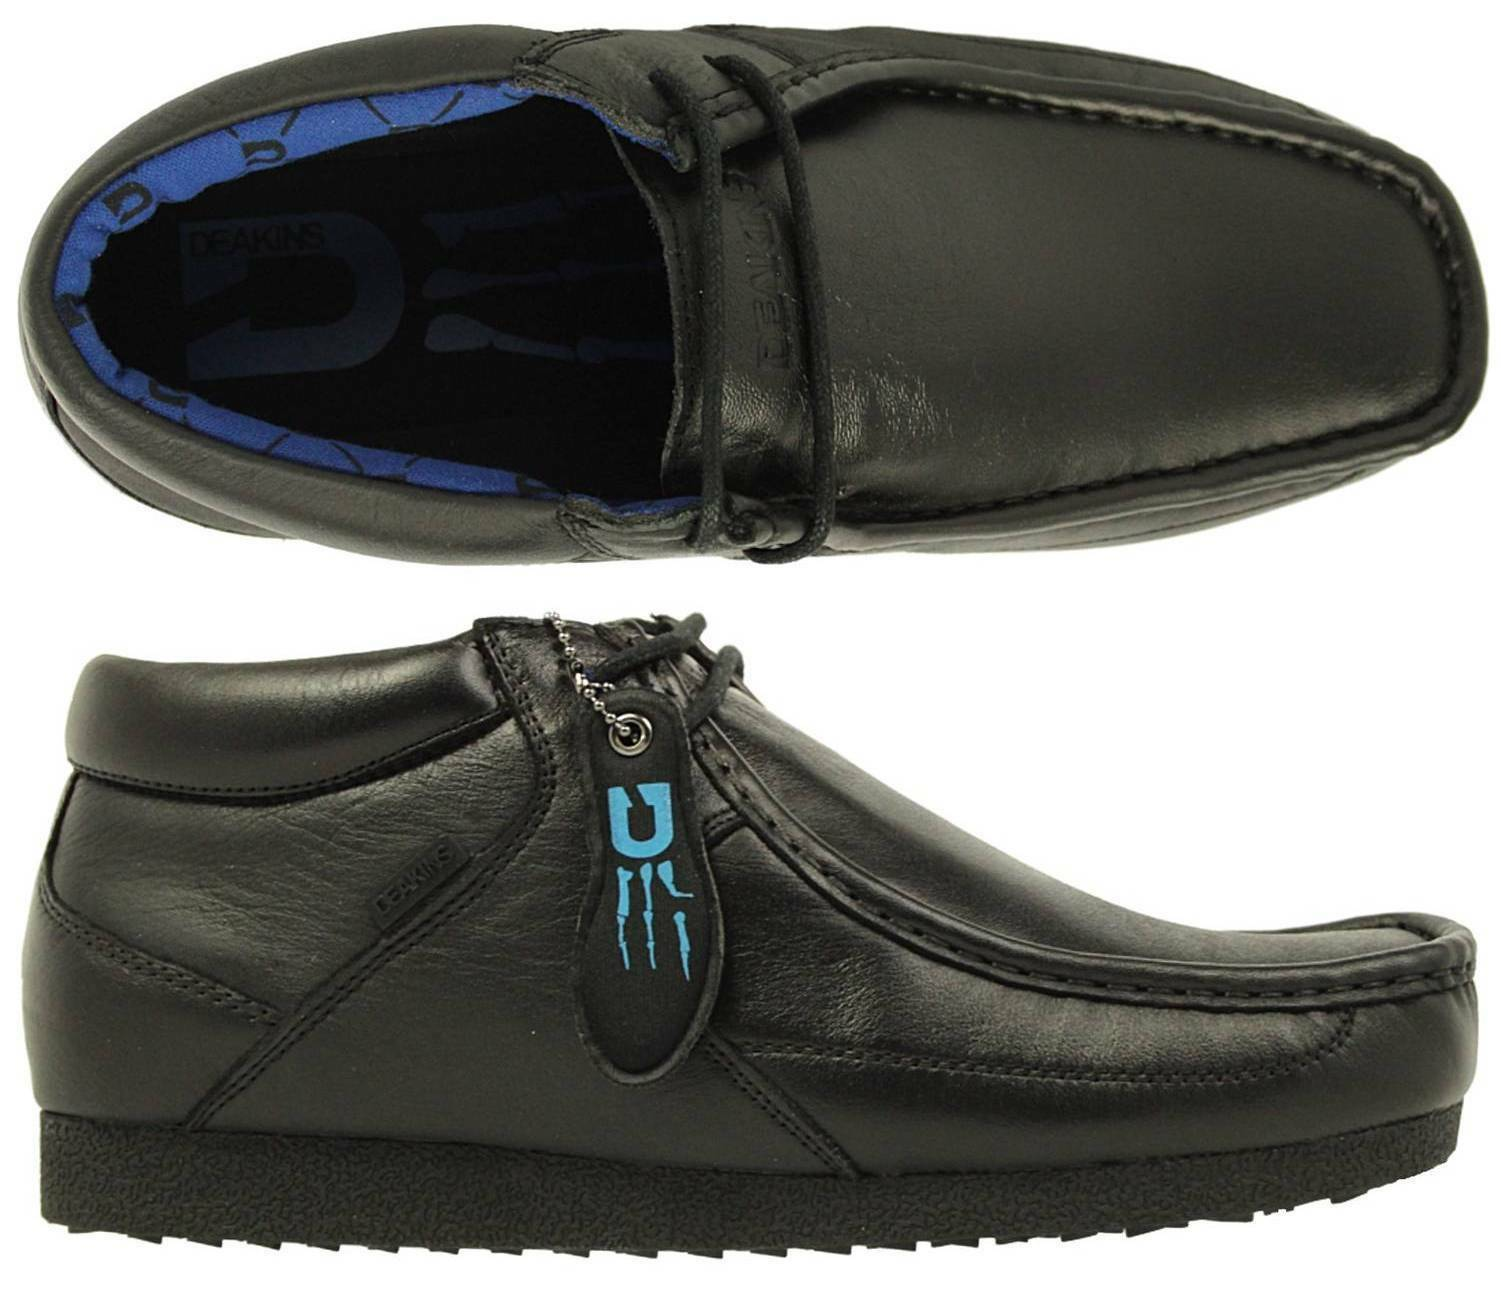 NEW BOYS SLIP ON TRAINERS CASUAL FLAT SCHOOL SHOES BOOTS SIZE JUNIORS 2-6UK UK